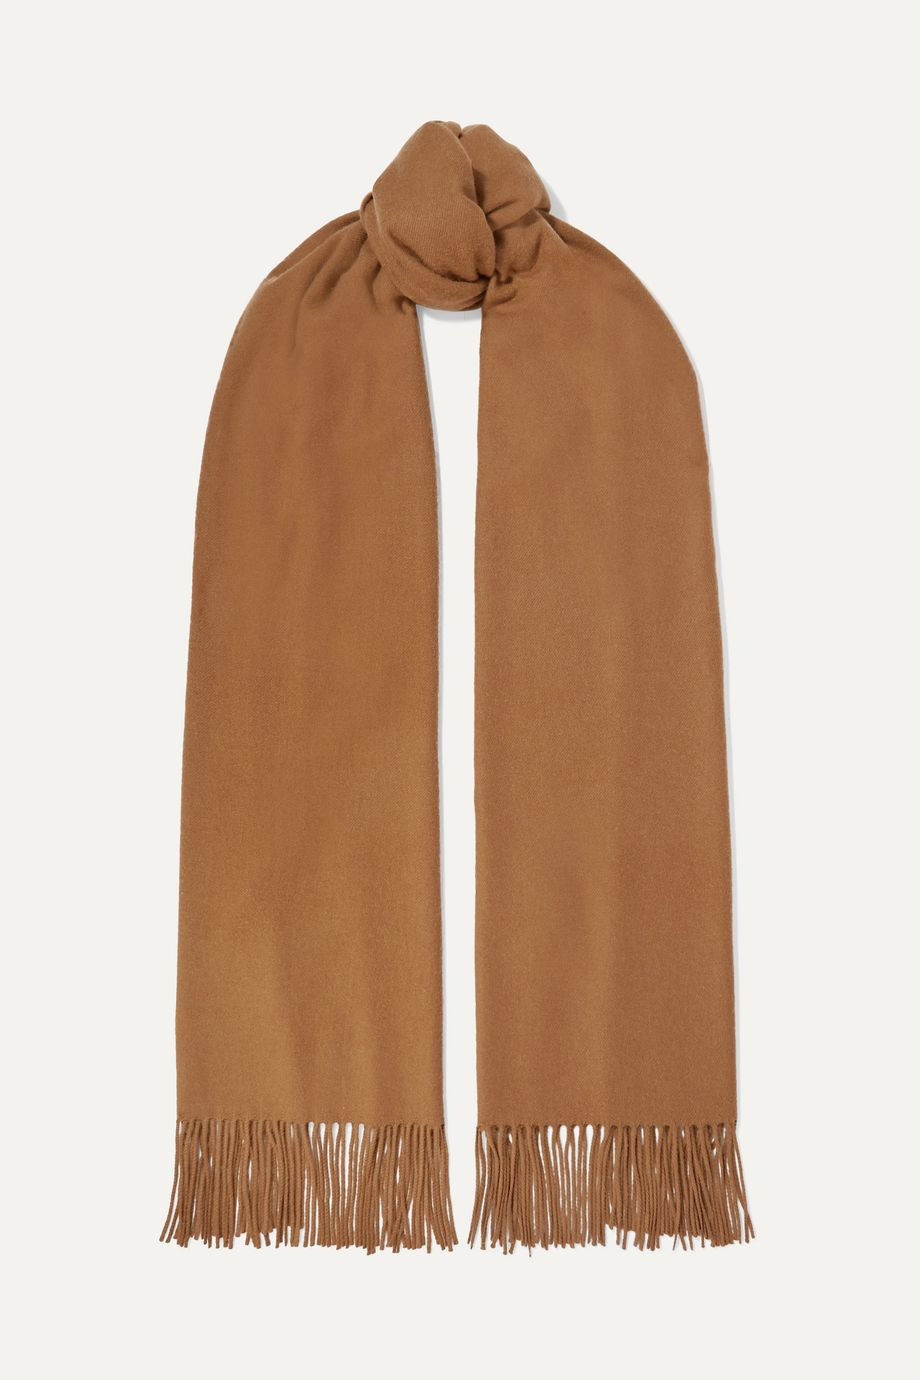 Johnstons of Elgin Fringed vicuña stole